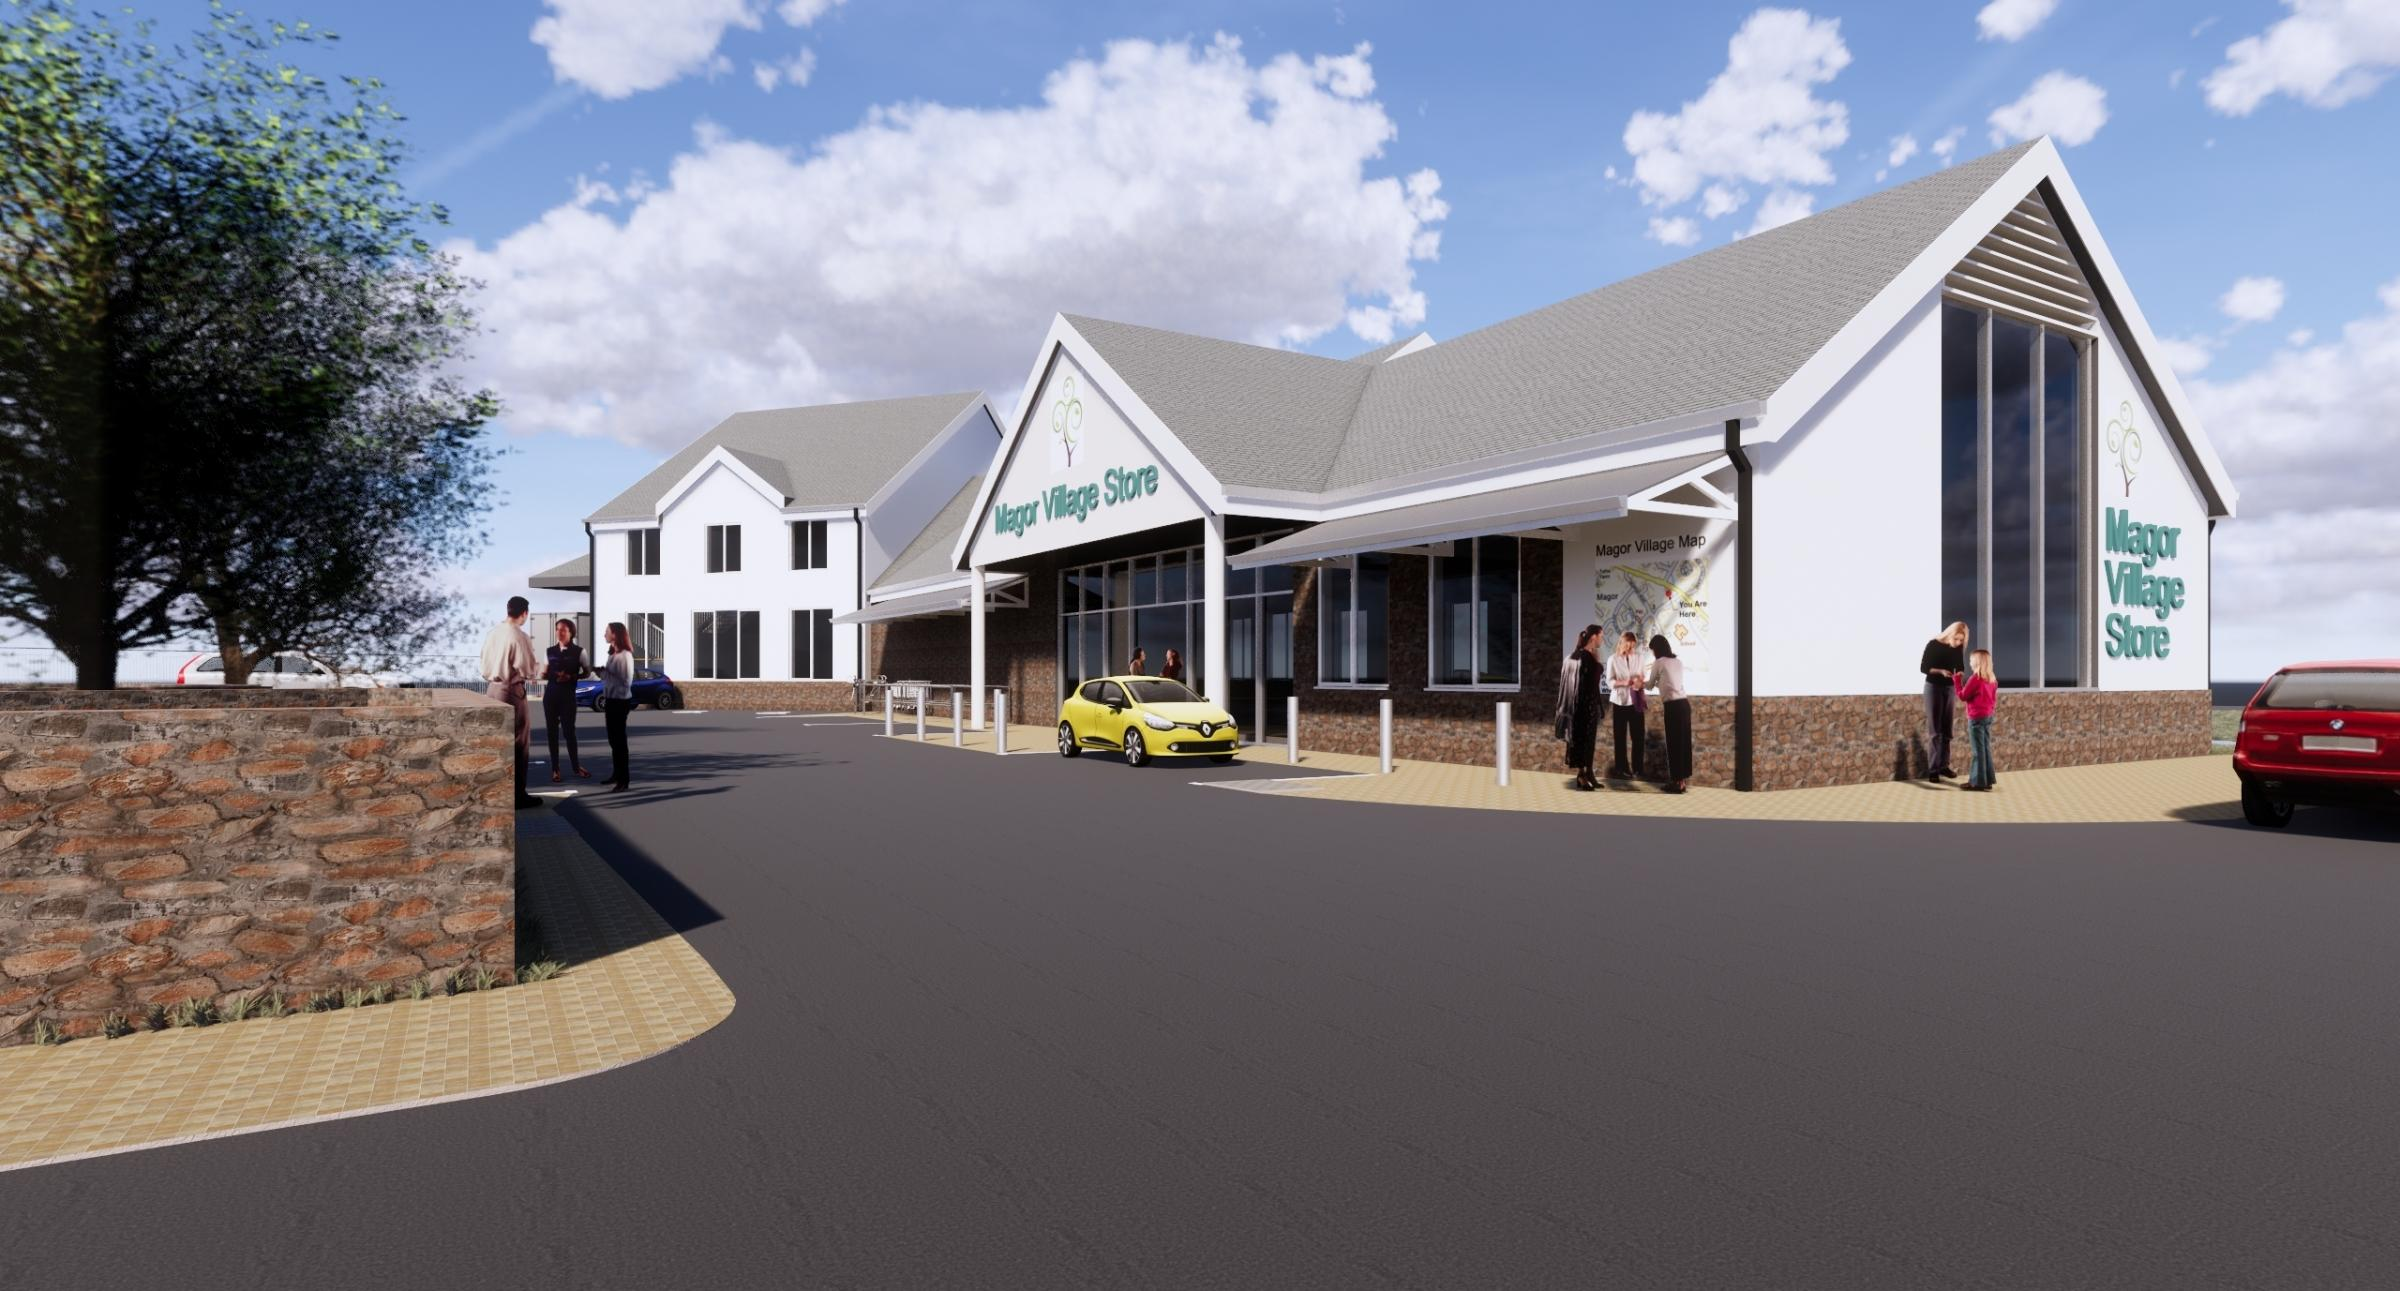 An image showing how the proposed store could look